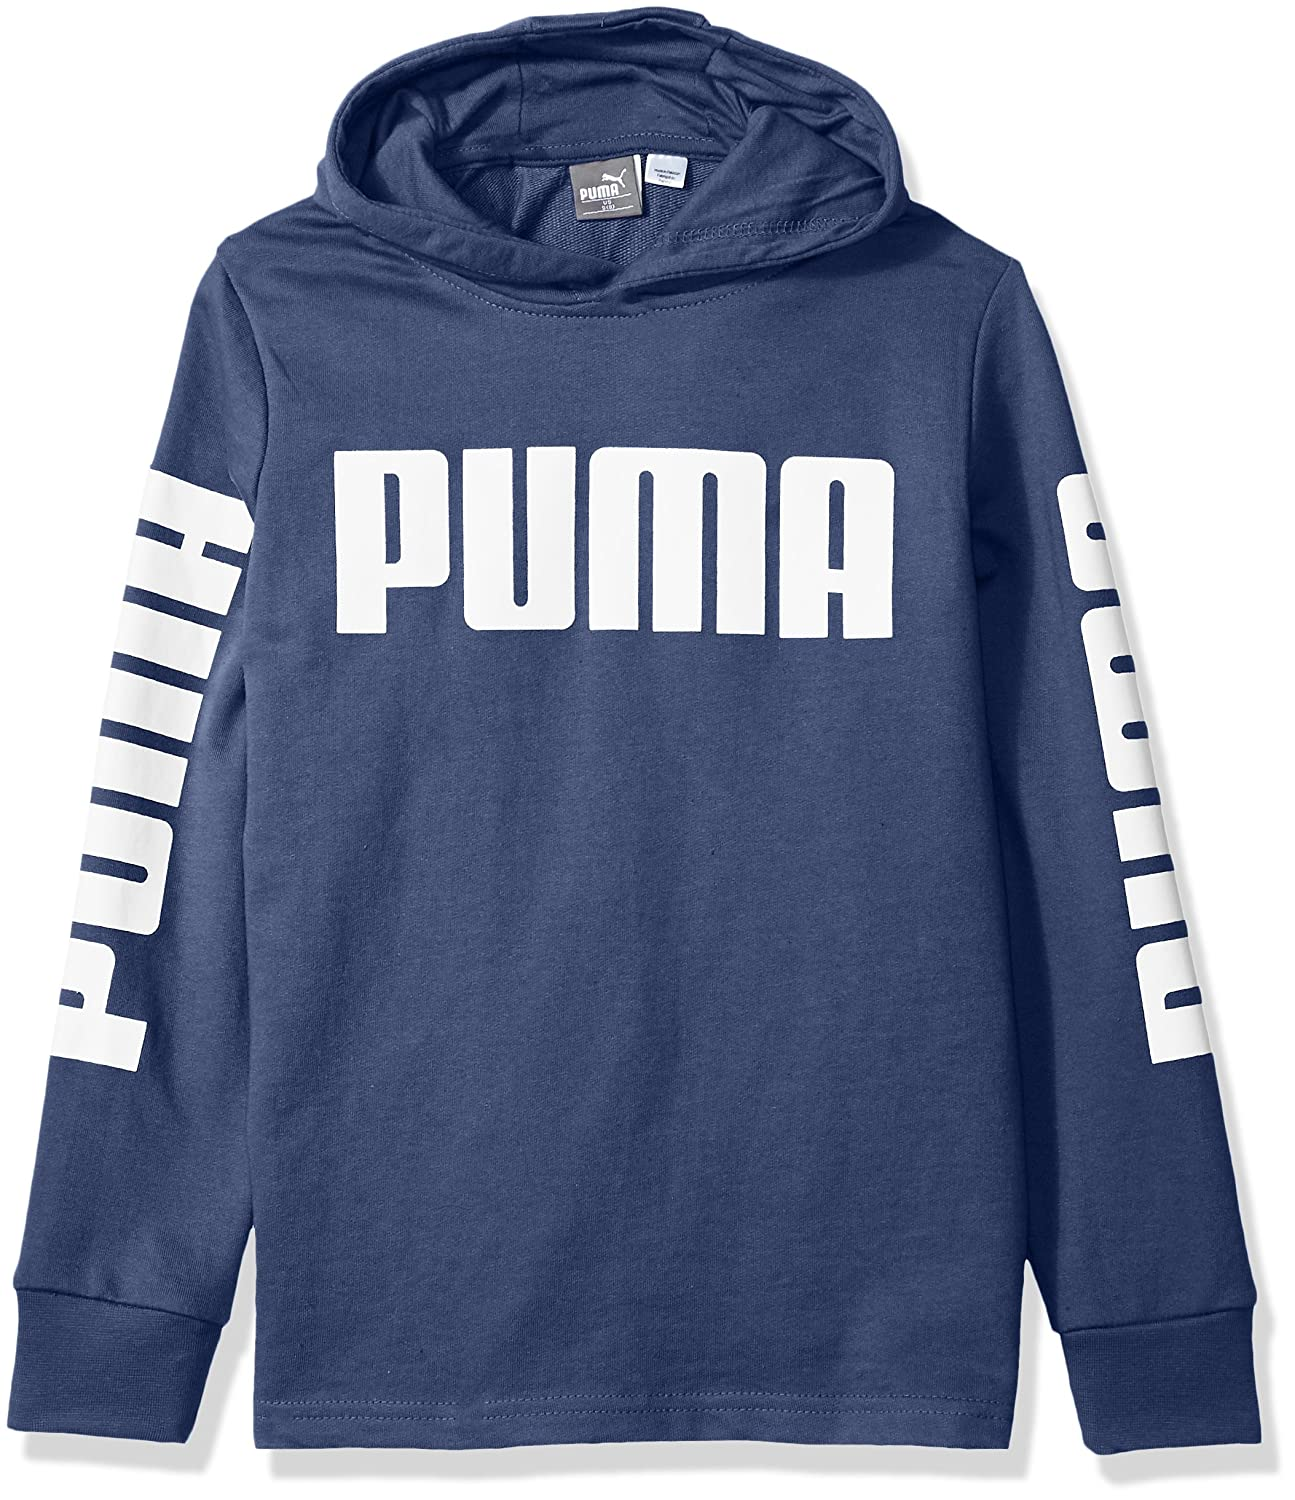 PUMA Big Boys' Rebel Pull Over Hoodie